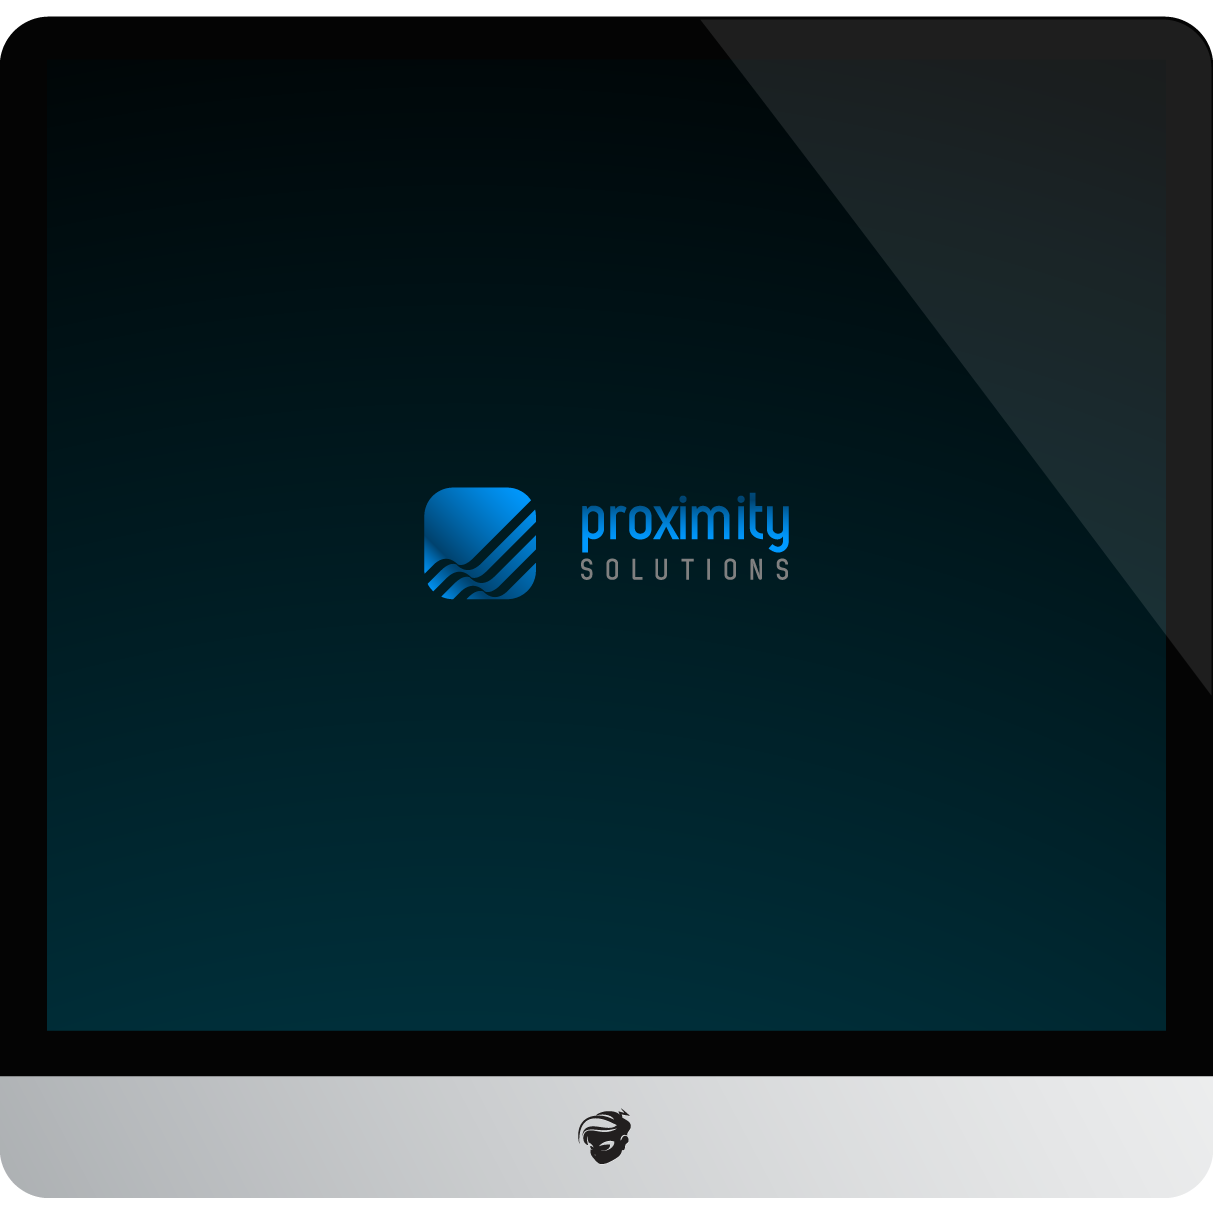 Logo Design by zesthar - Entry No. 157 in the Logo Design Contest New Logo Design for Proximity Solutions.